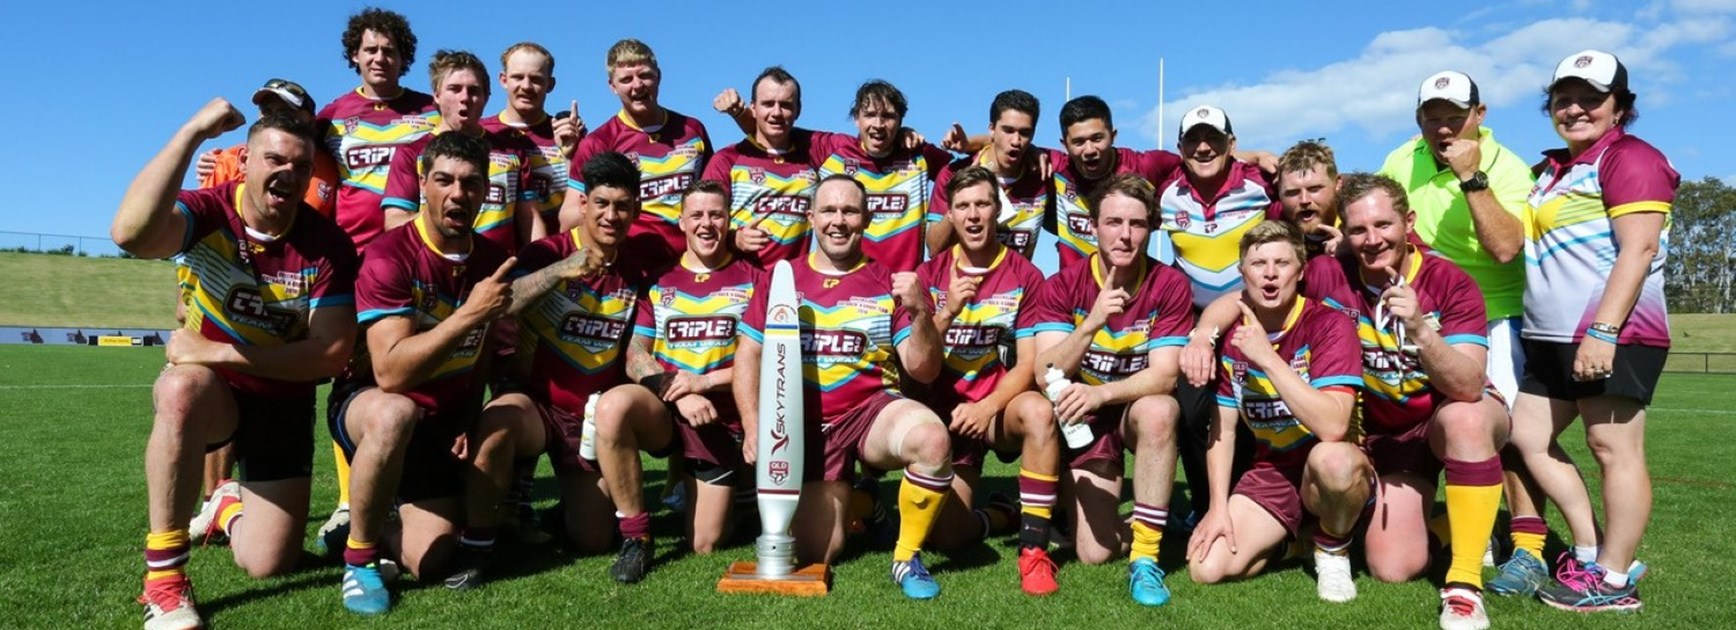 Queensland Outback break title drought